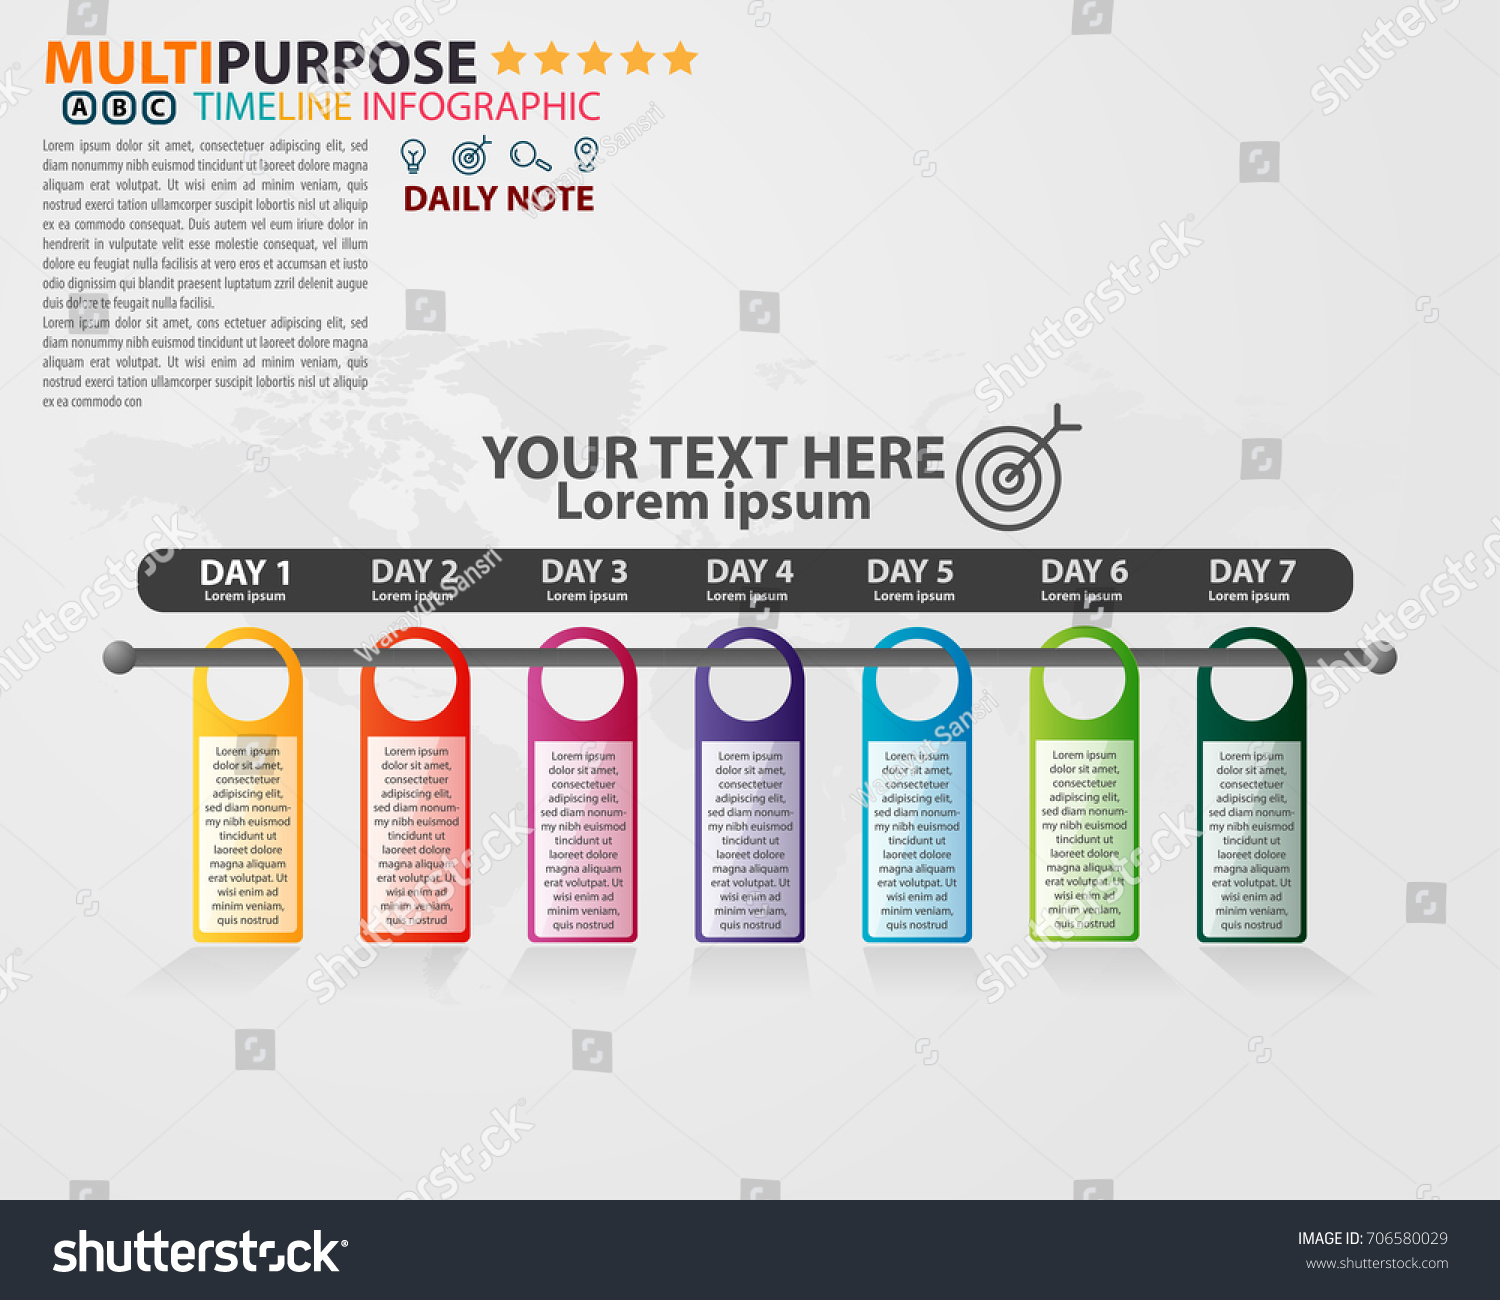 Infographic timeline day time frame multiple stock vector infographic timeline day time frame for multiple purpose of use jeuxipadfo Gallery